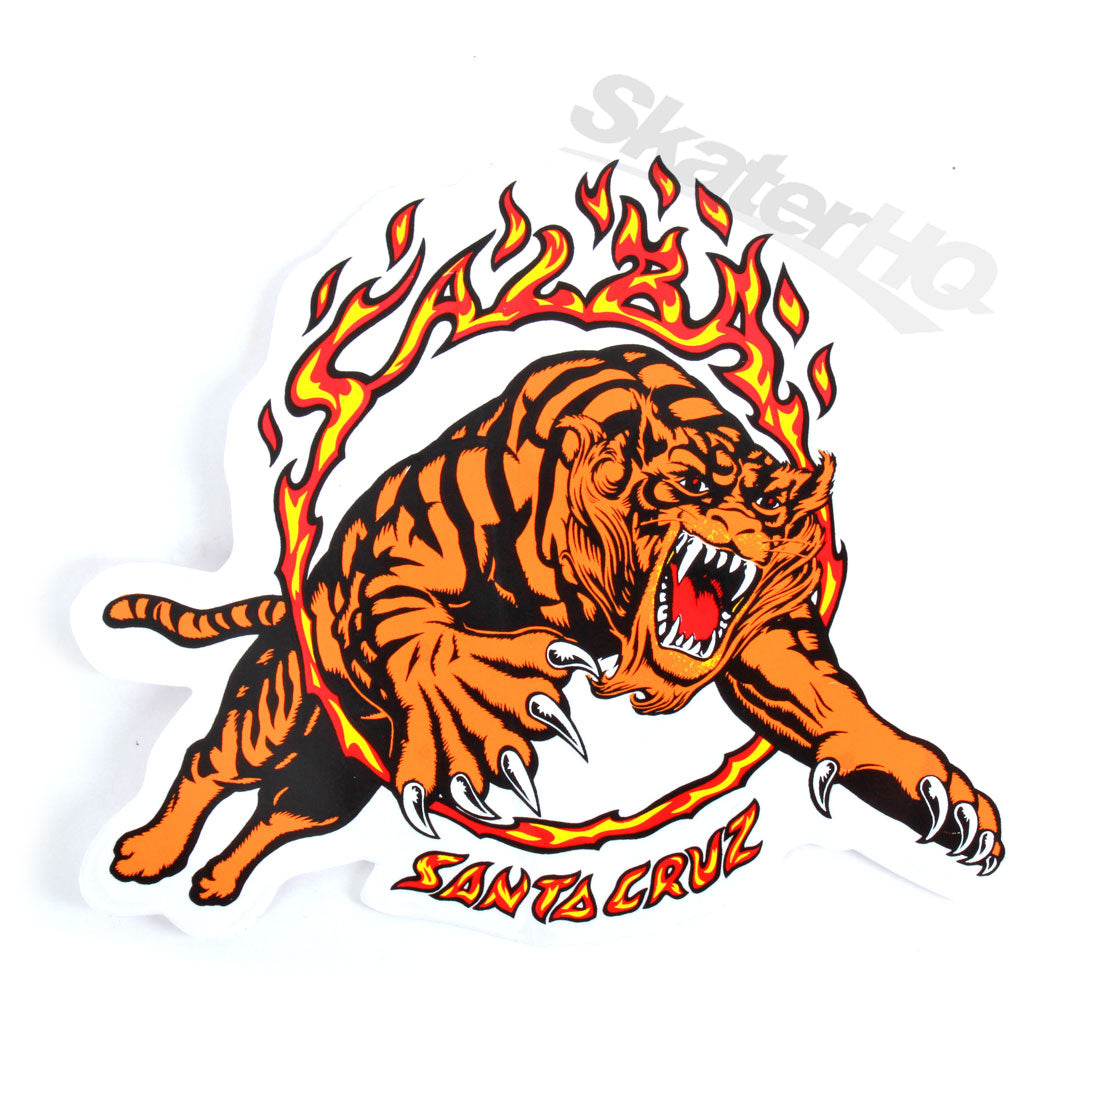 Santa Cruz Salba Tiger Sticker